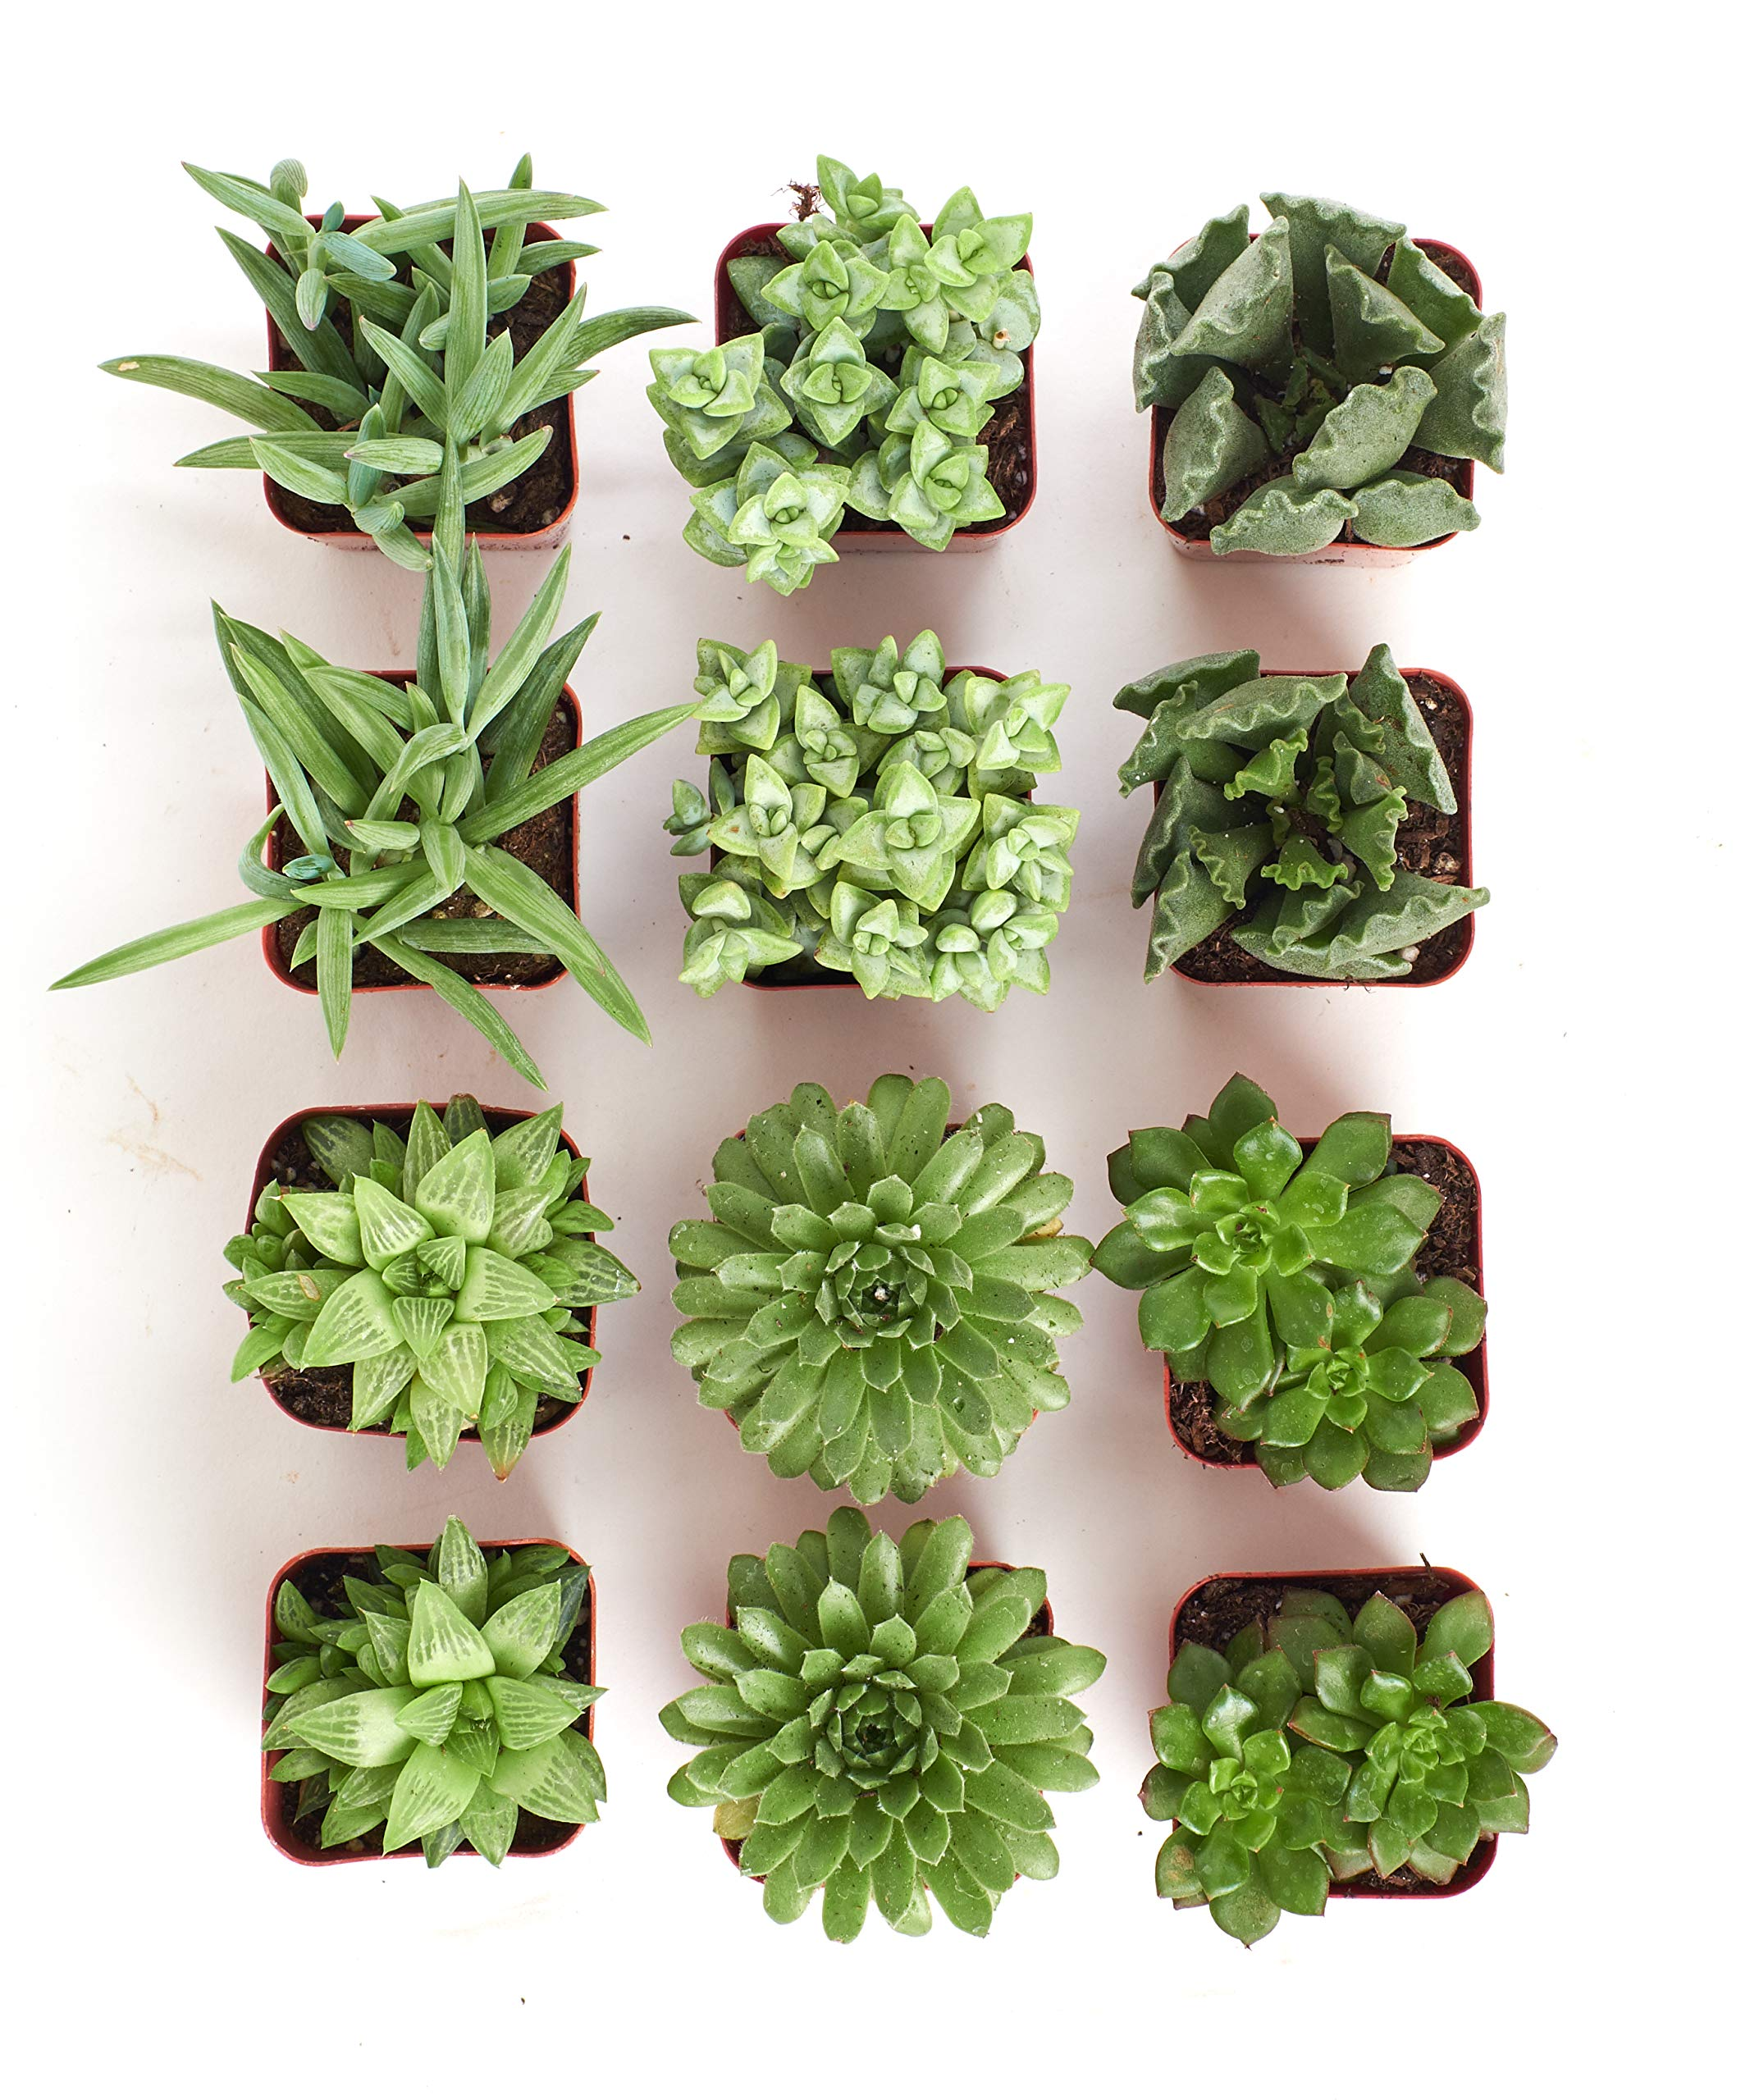 Shop Succulents | Green Live Plants, Hand Selected Variety Pack of Mini Succulents | | Collection of 12 in 2'' pots, Pack of 12 by Shop Succulents (Image #5)